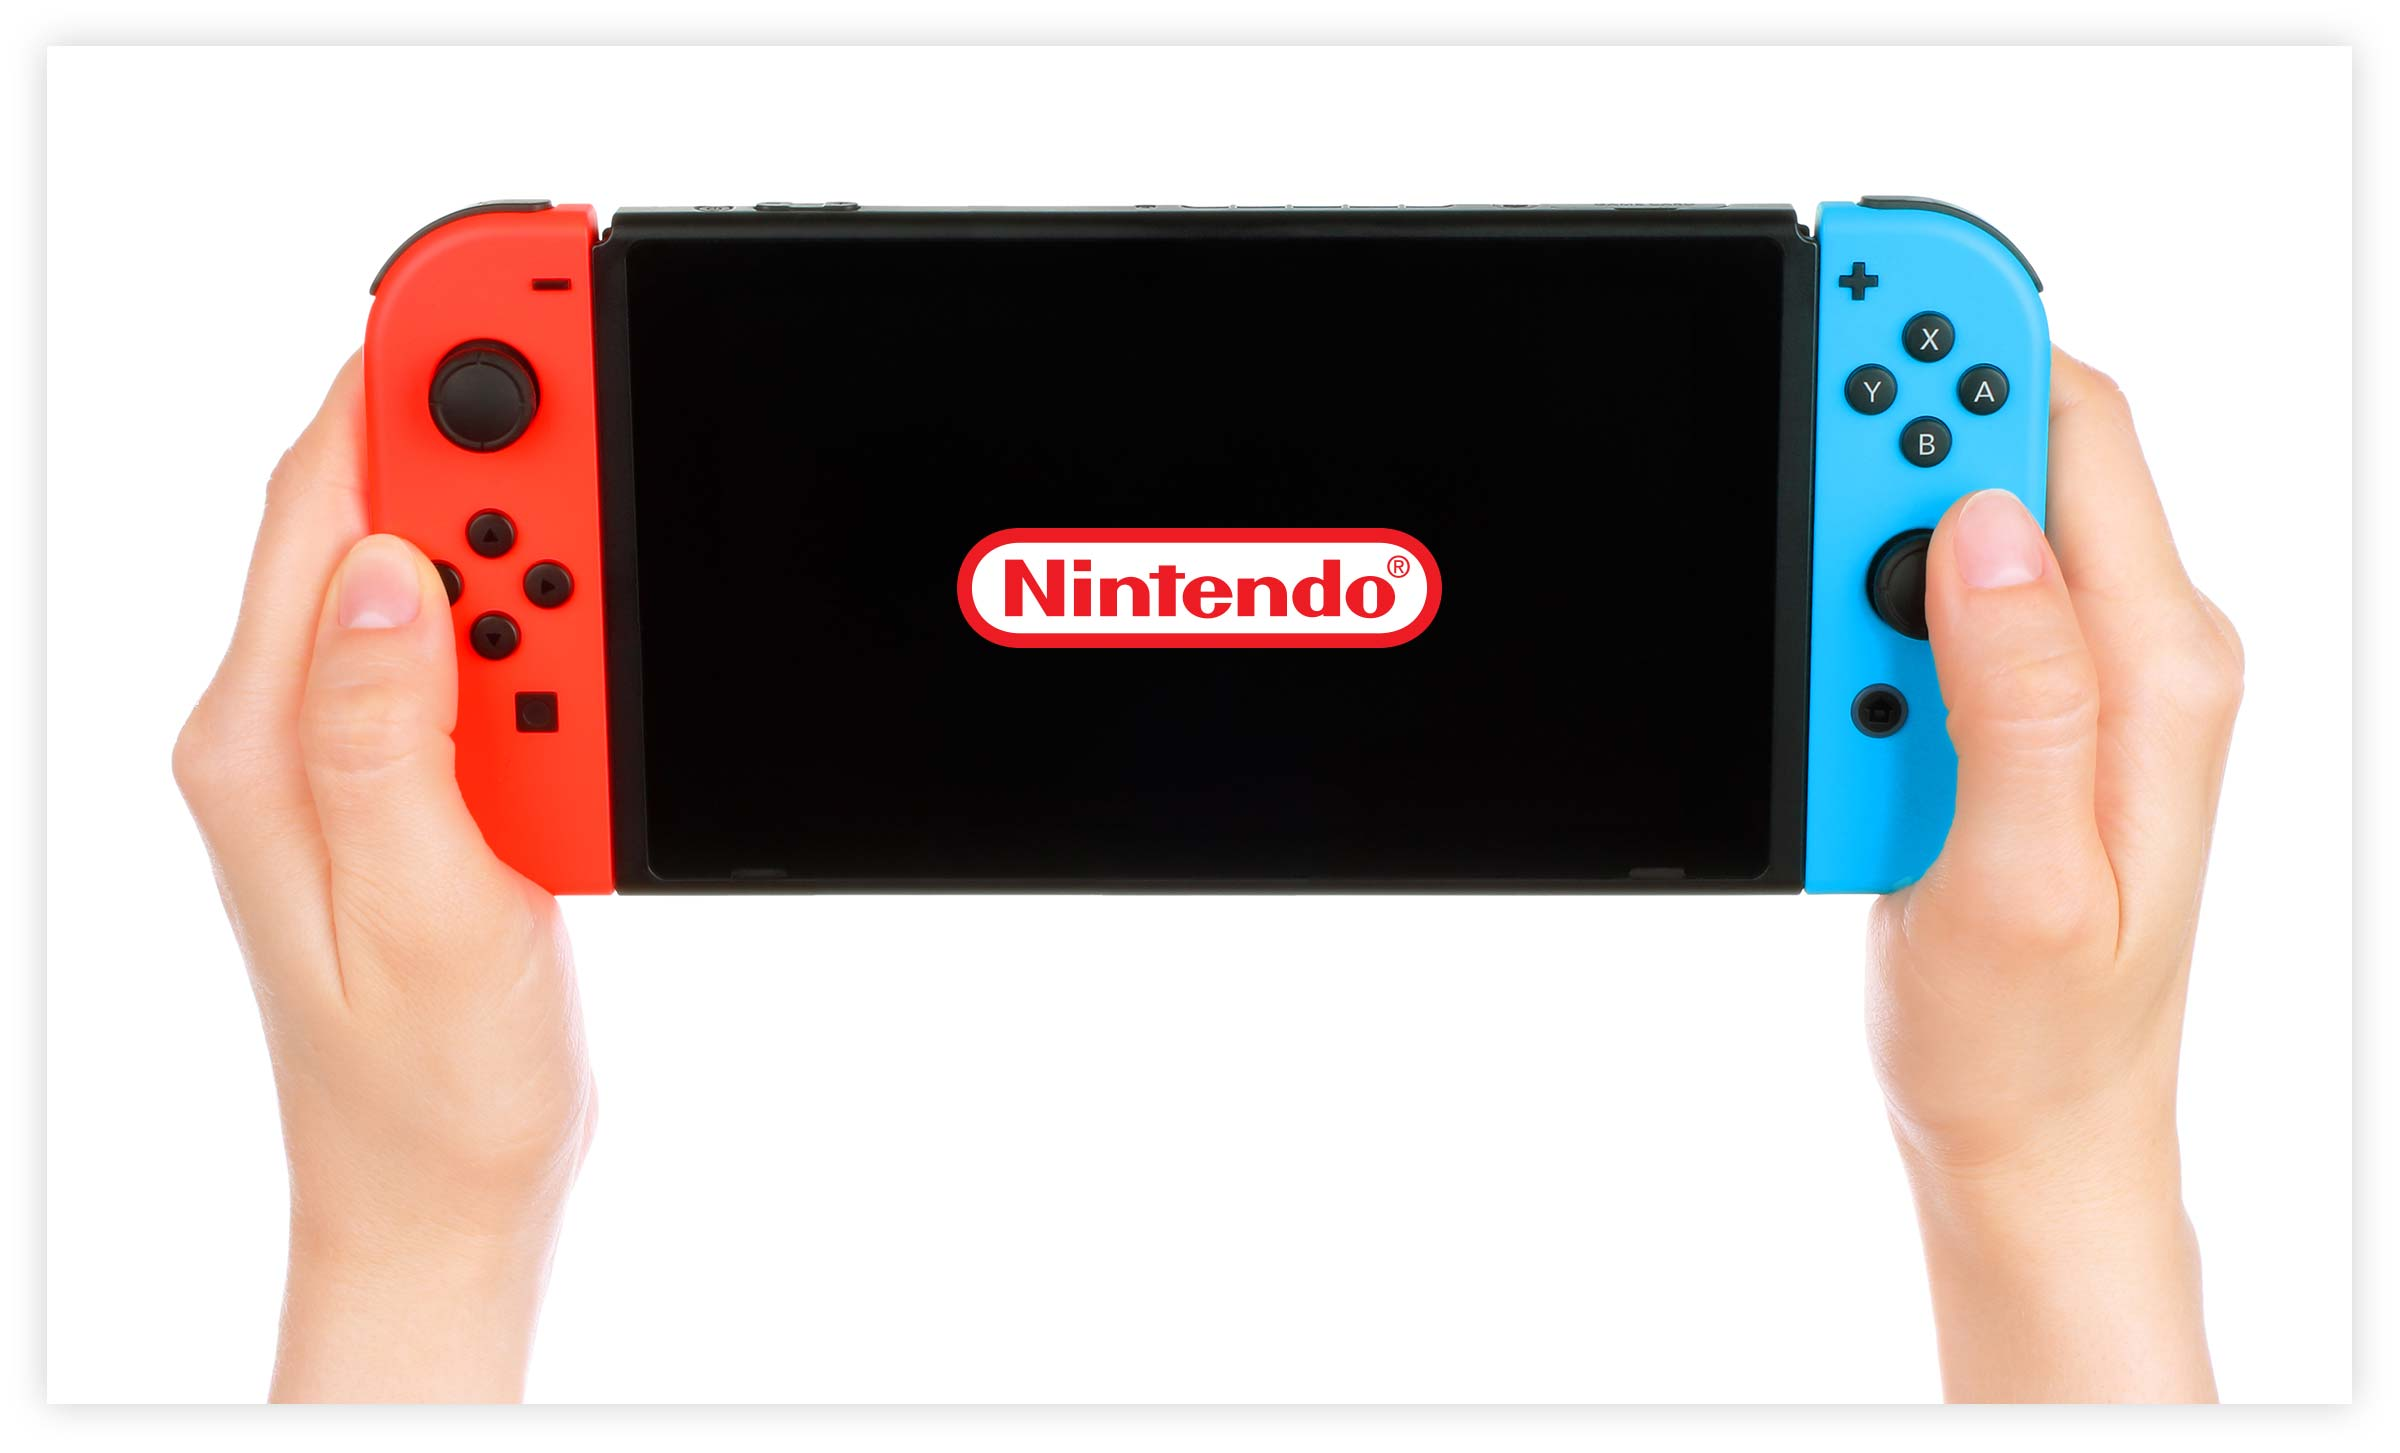 The wireless Nintendo Switch controllers continue the legacy of user-first gaming established with the breakthrough Wii console.